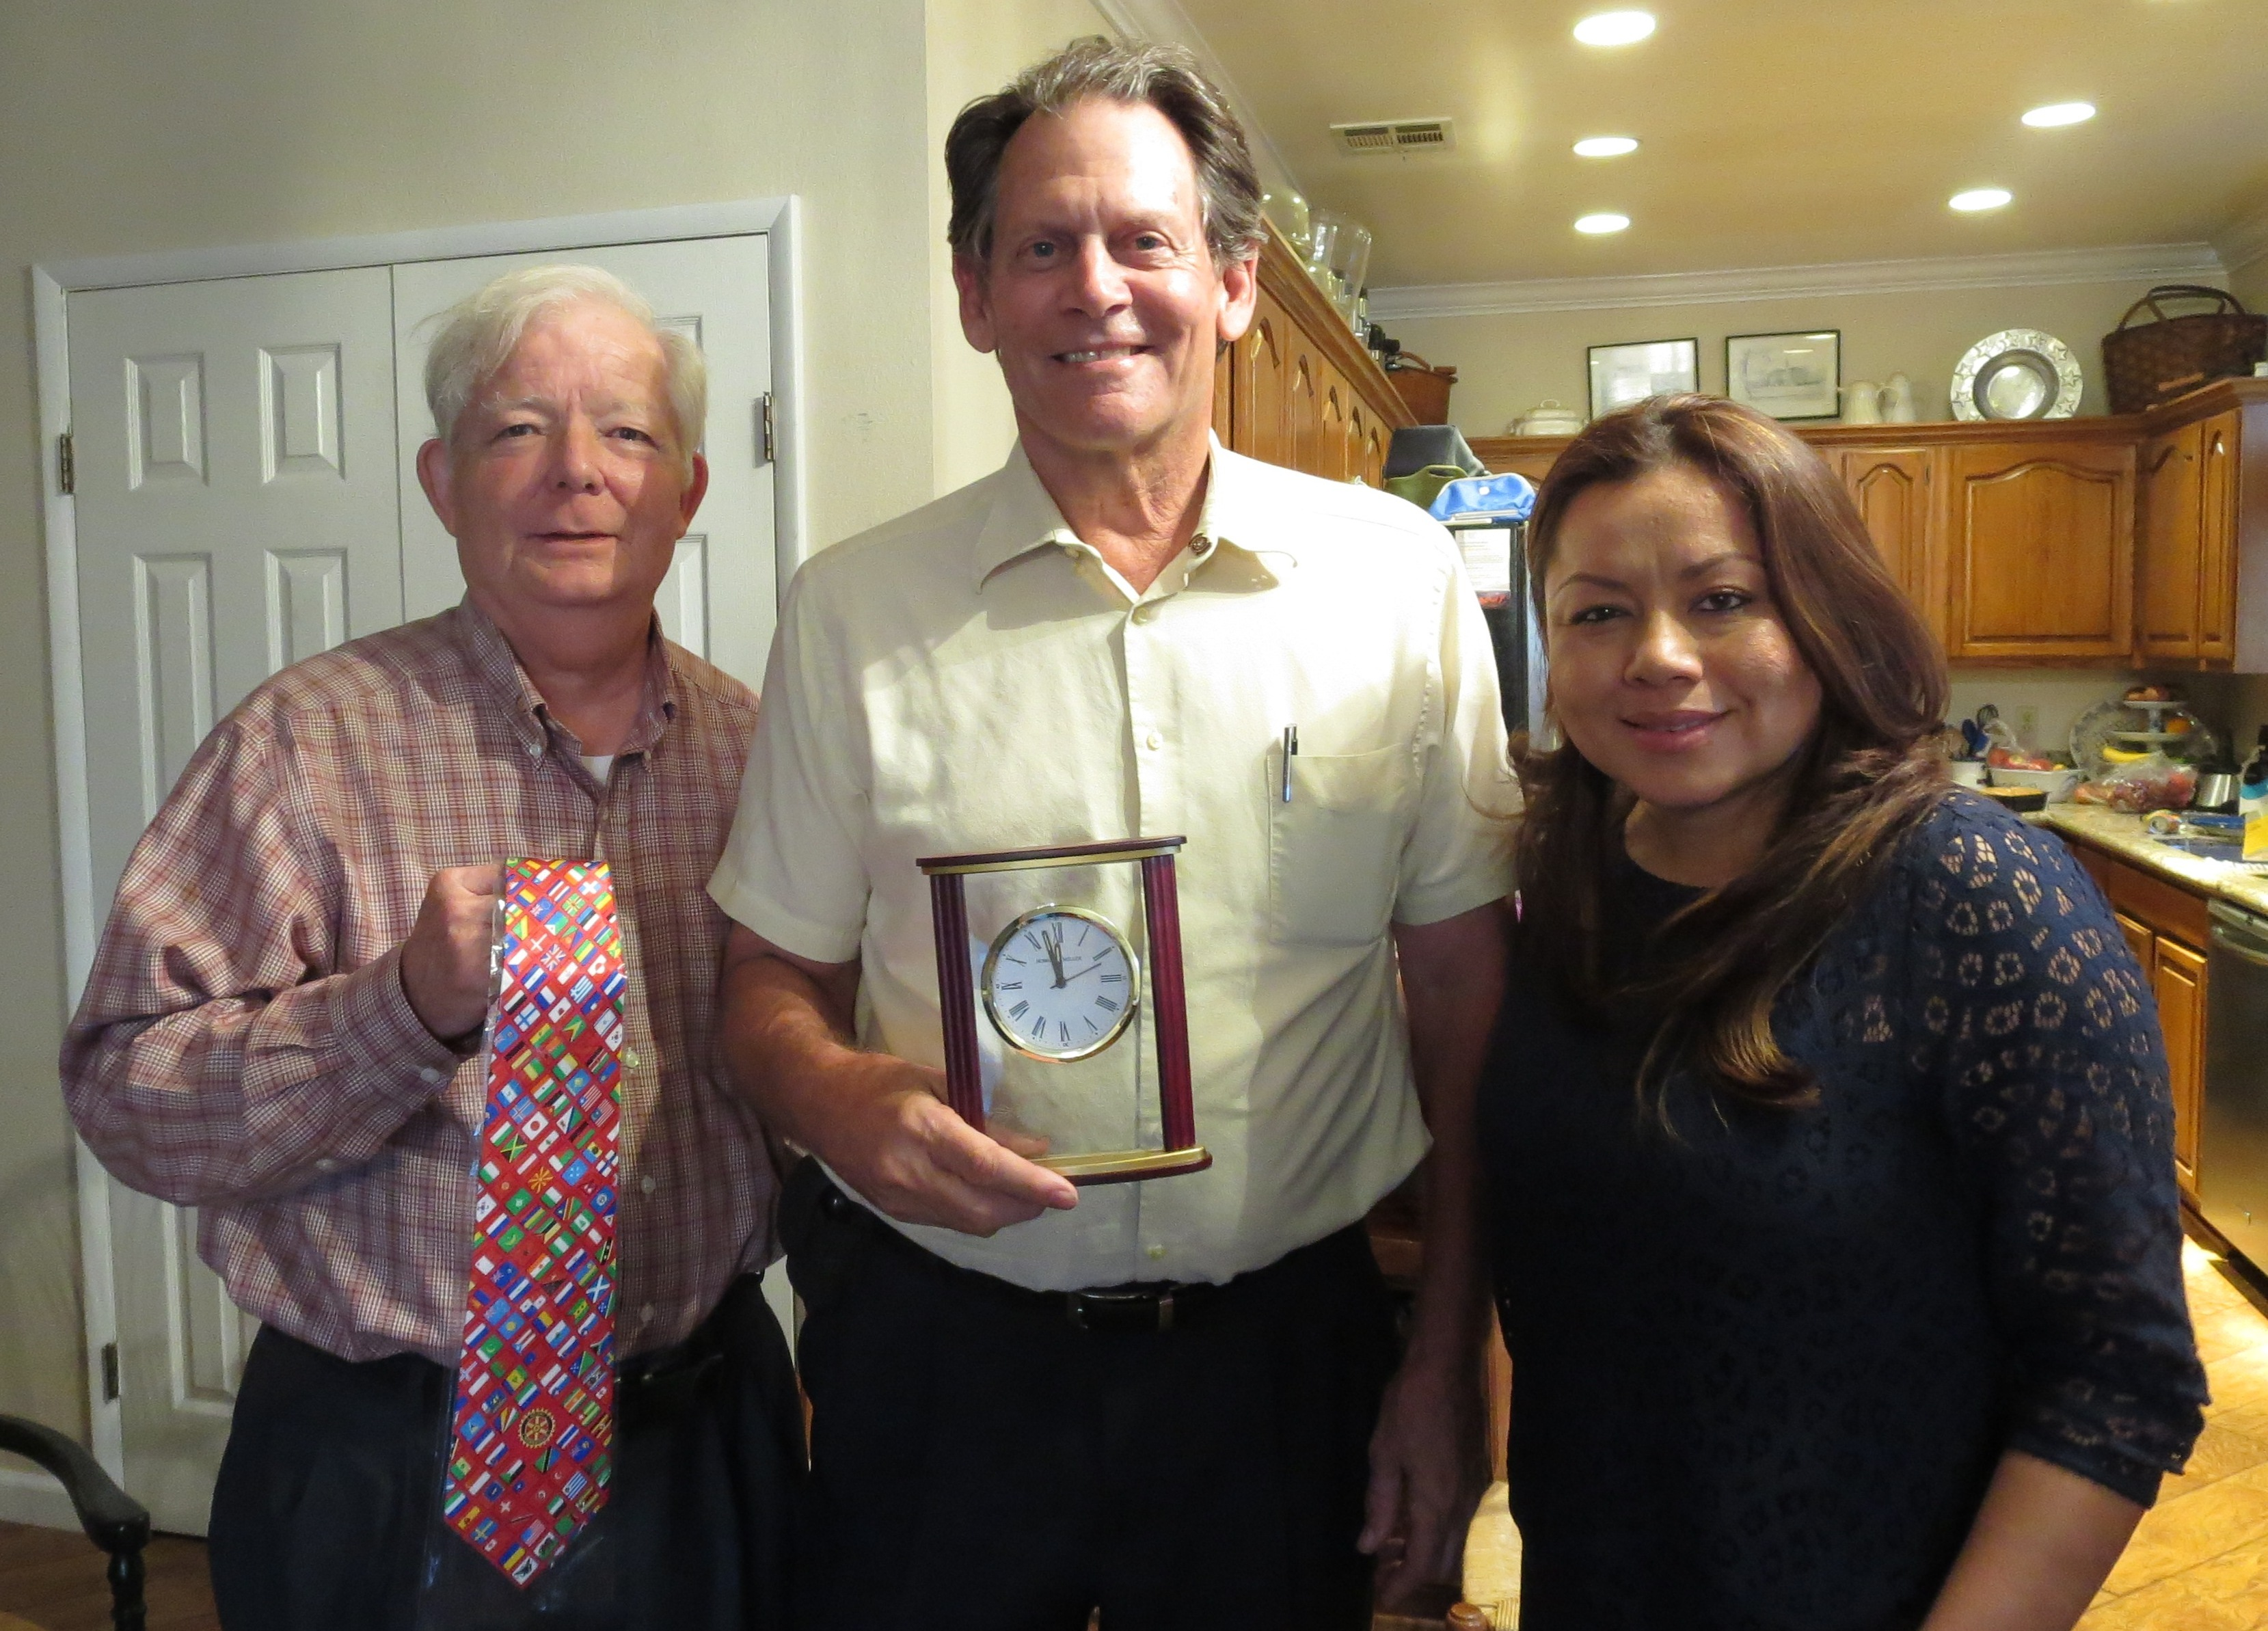 baron-receives-a-rotary-tie-and-clock